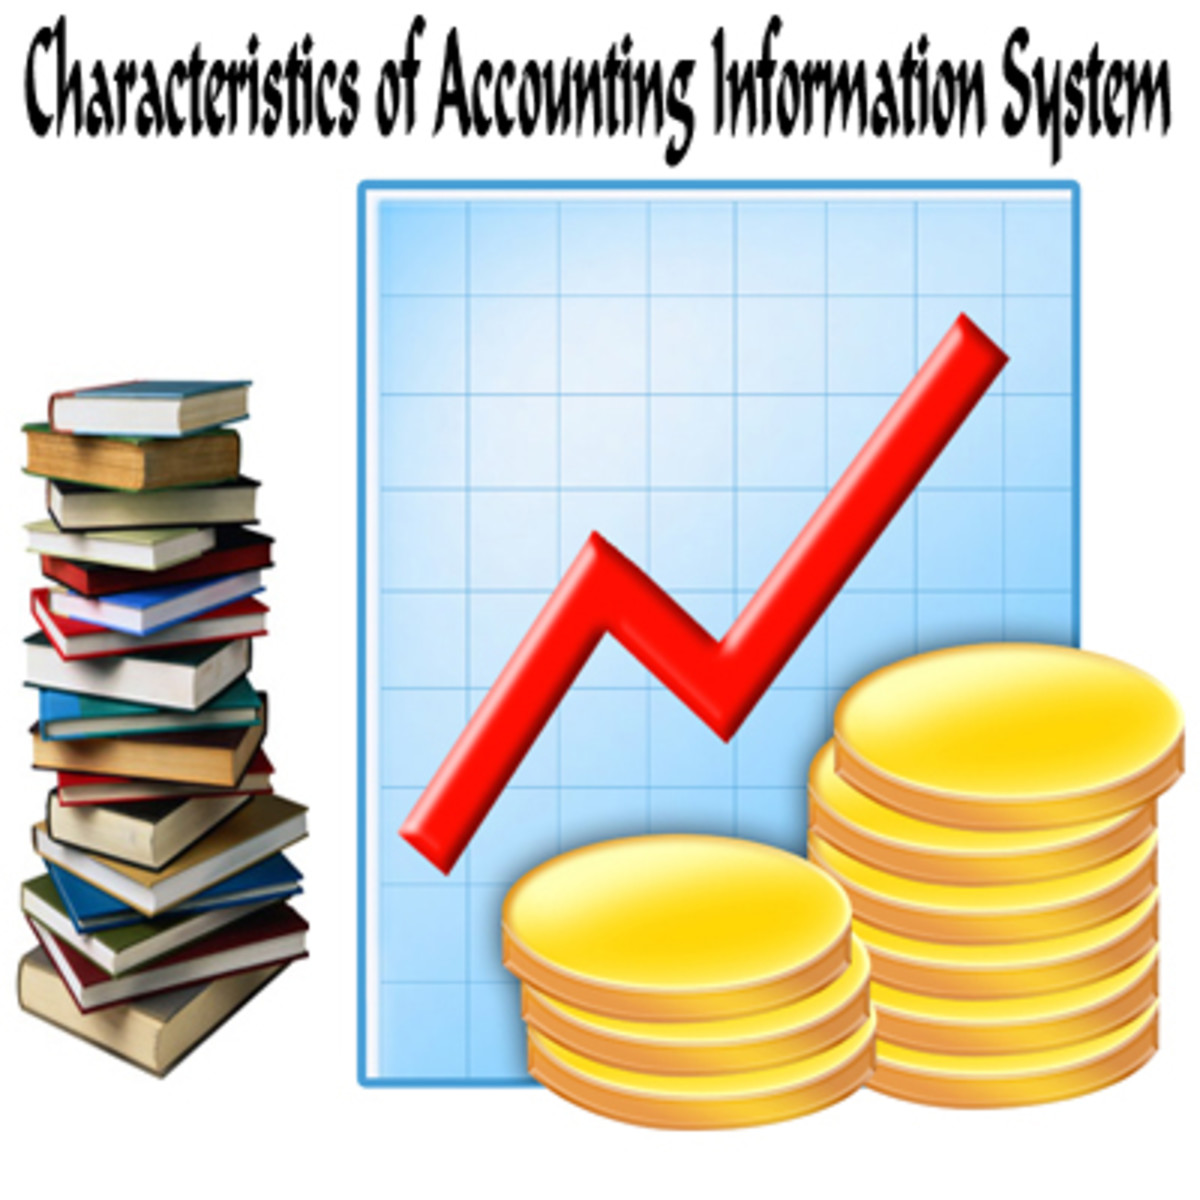 Characteristics of Accounting Information System